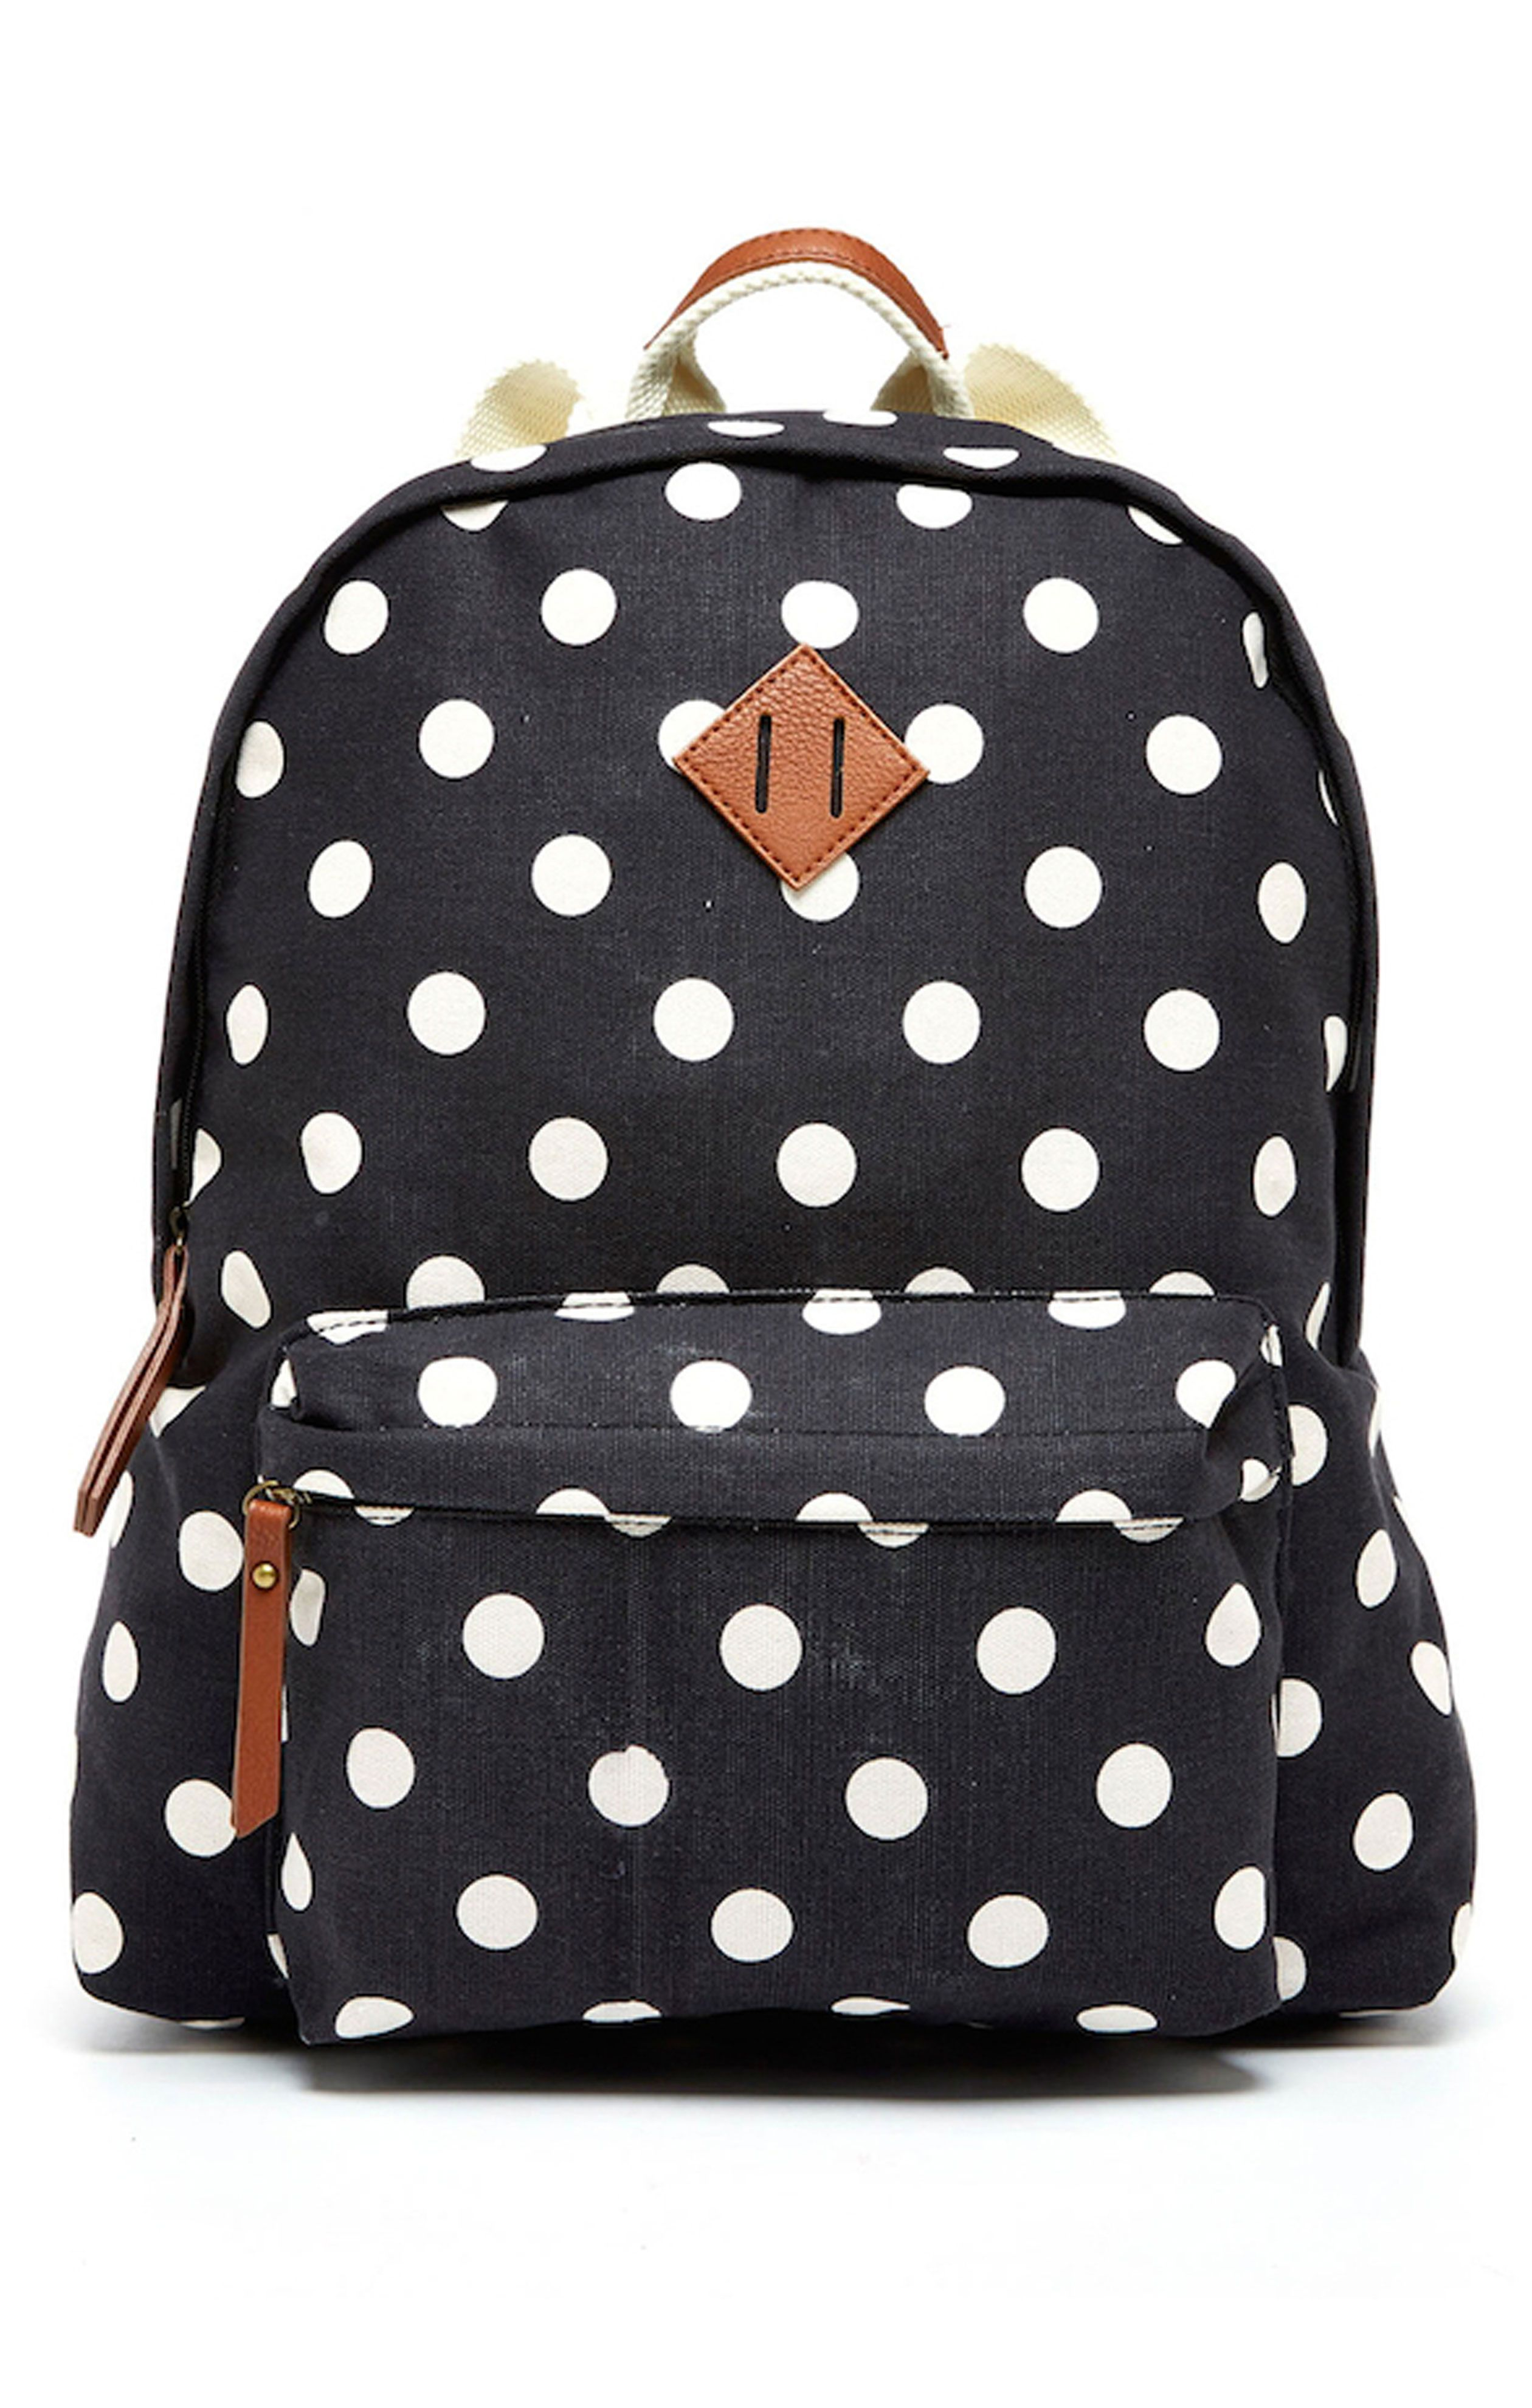 47d67c9b5 Madden Girl Backpacks | Brought to You by ideel | Clothings and ...